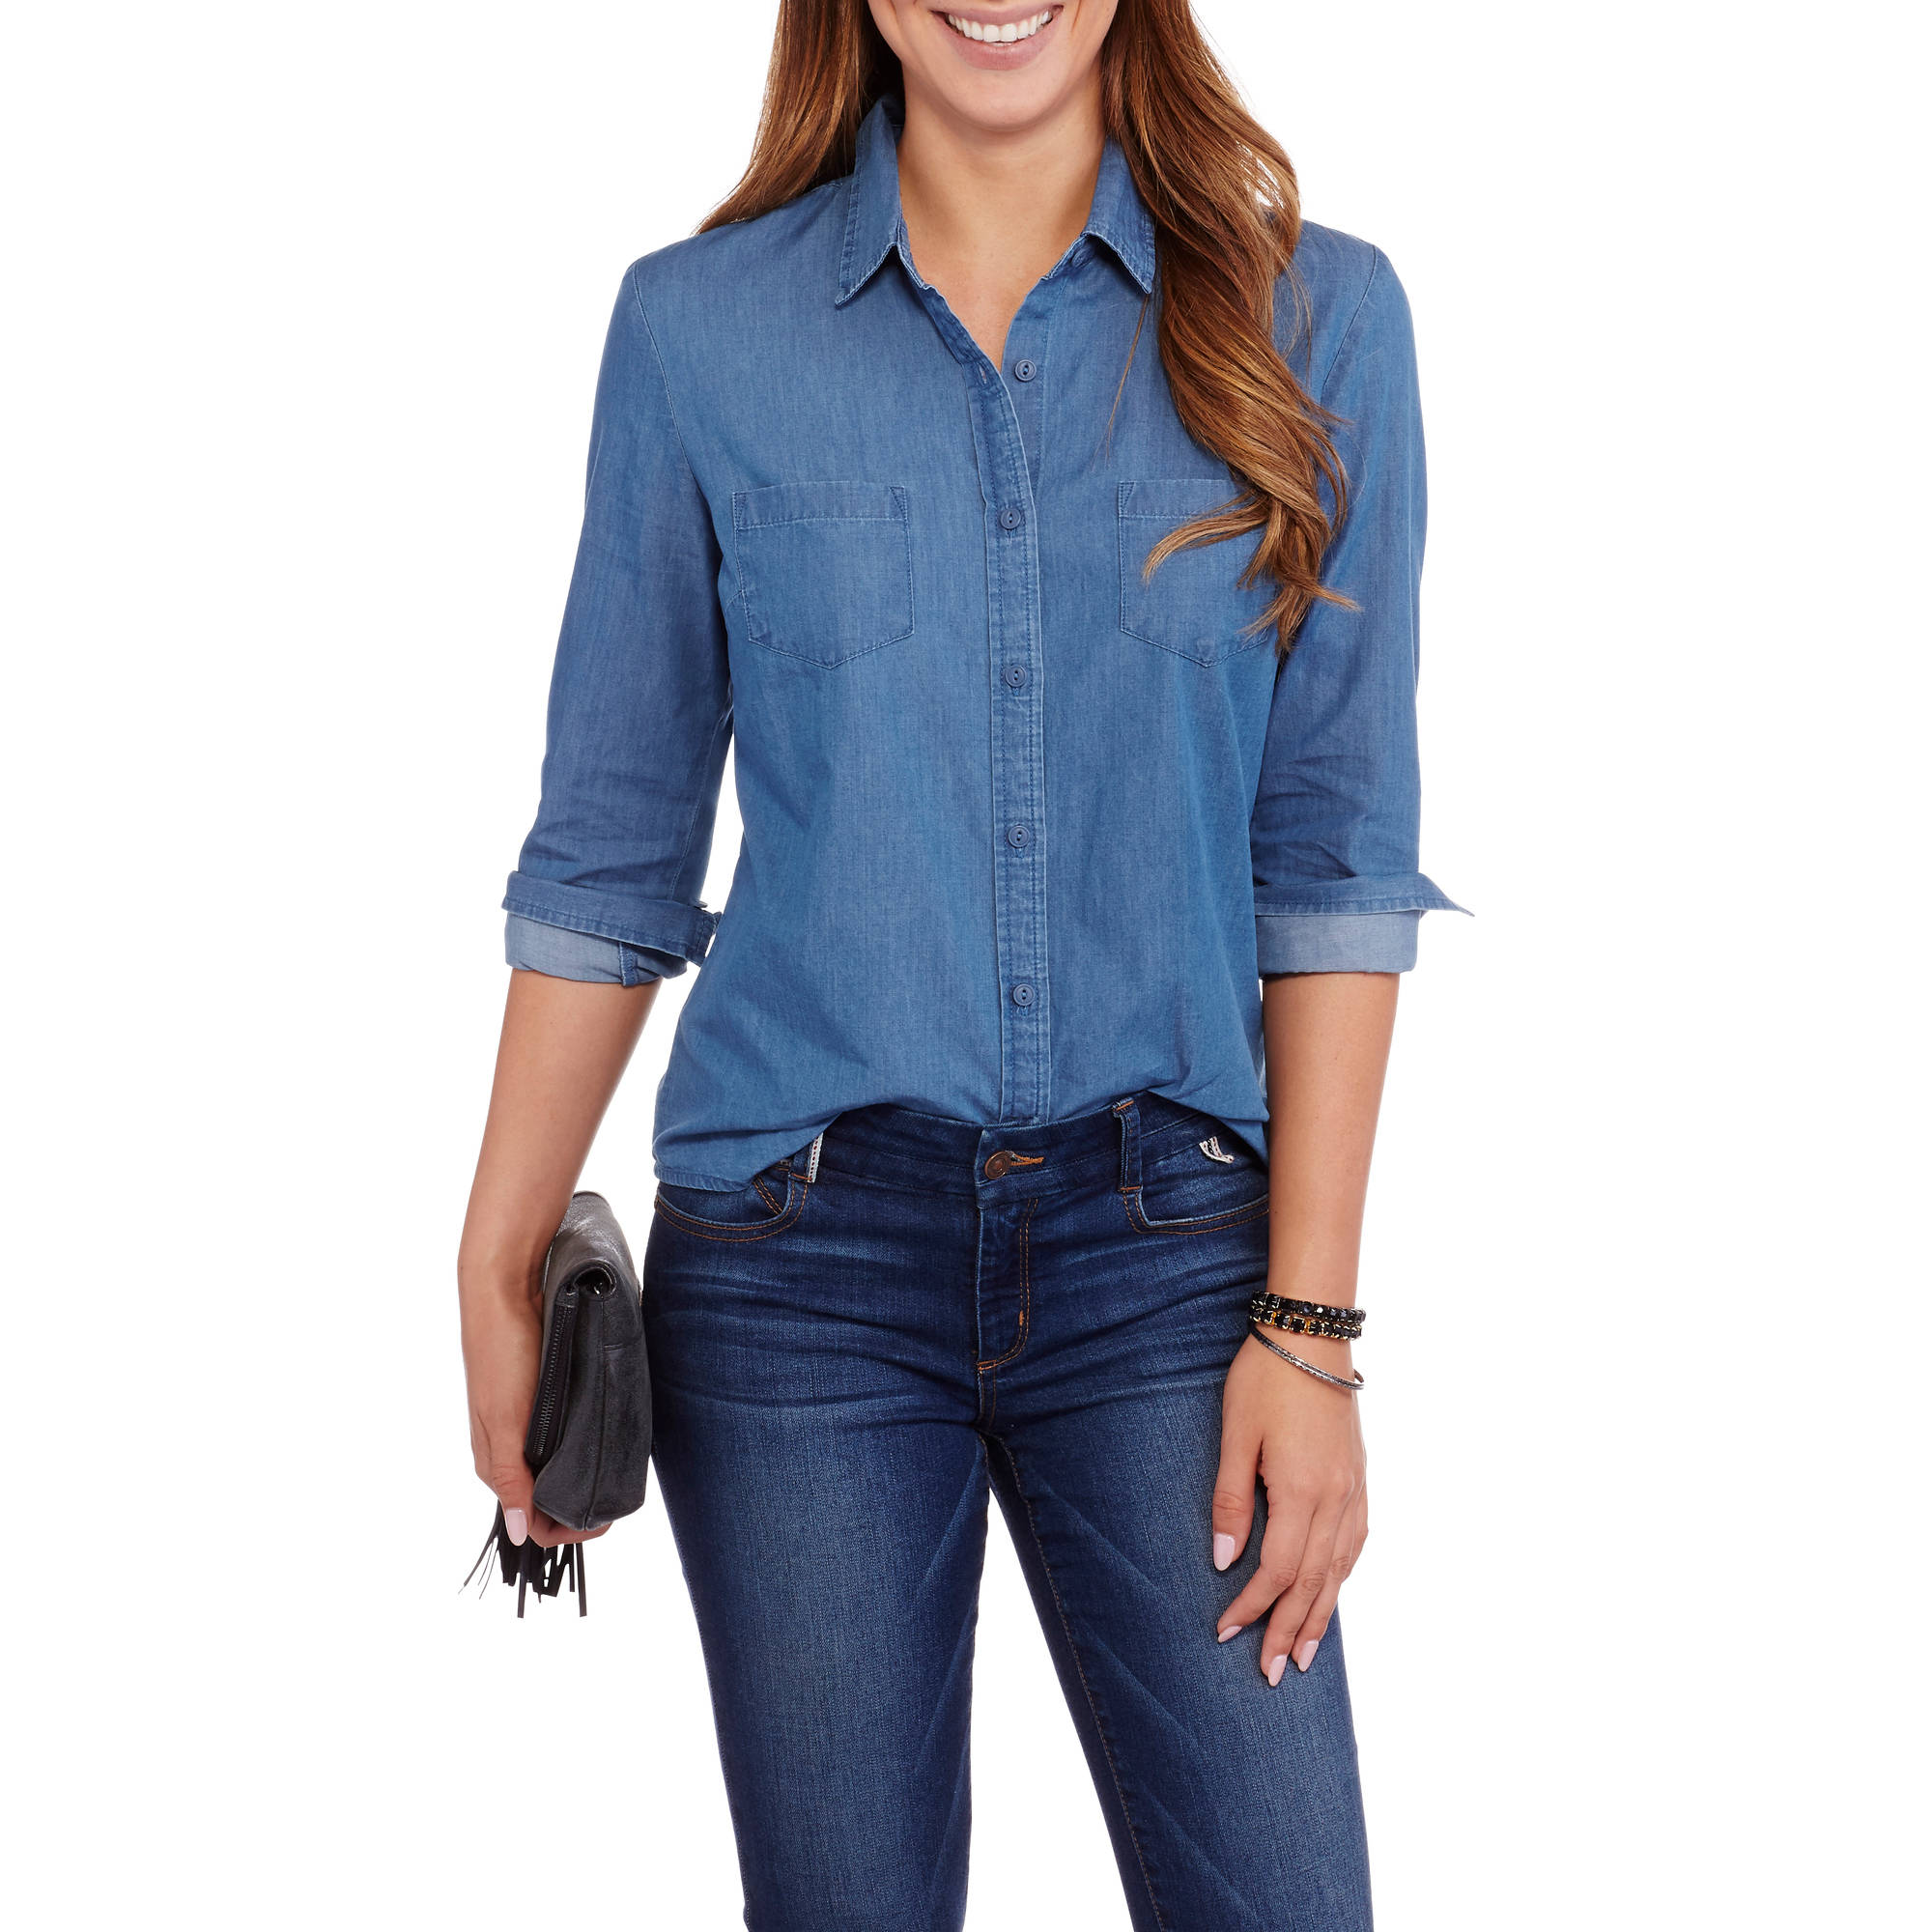 Check Out Our Chambray Denim Tops to Complete Your Look with Any Casual Outfits.